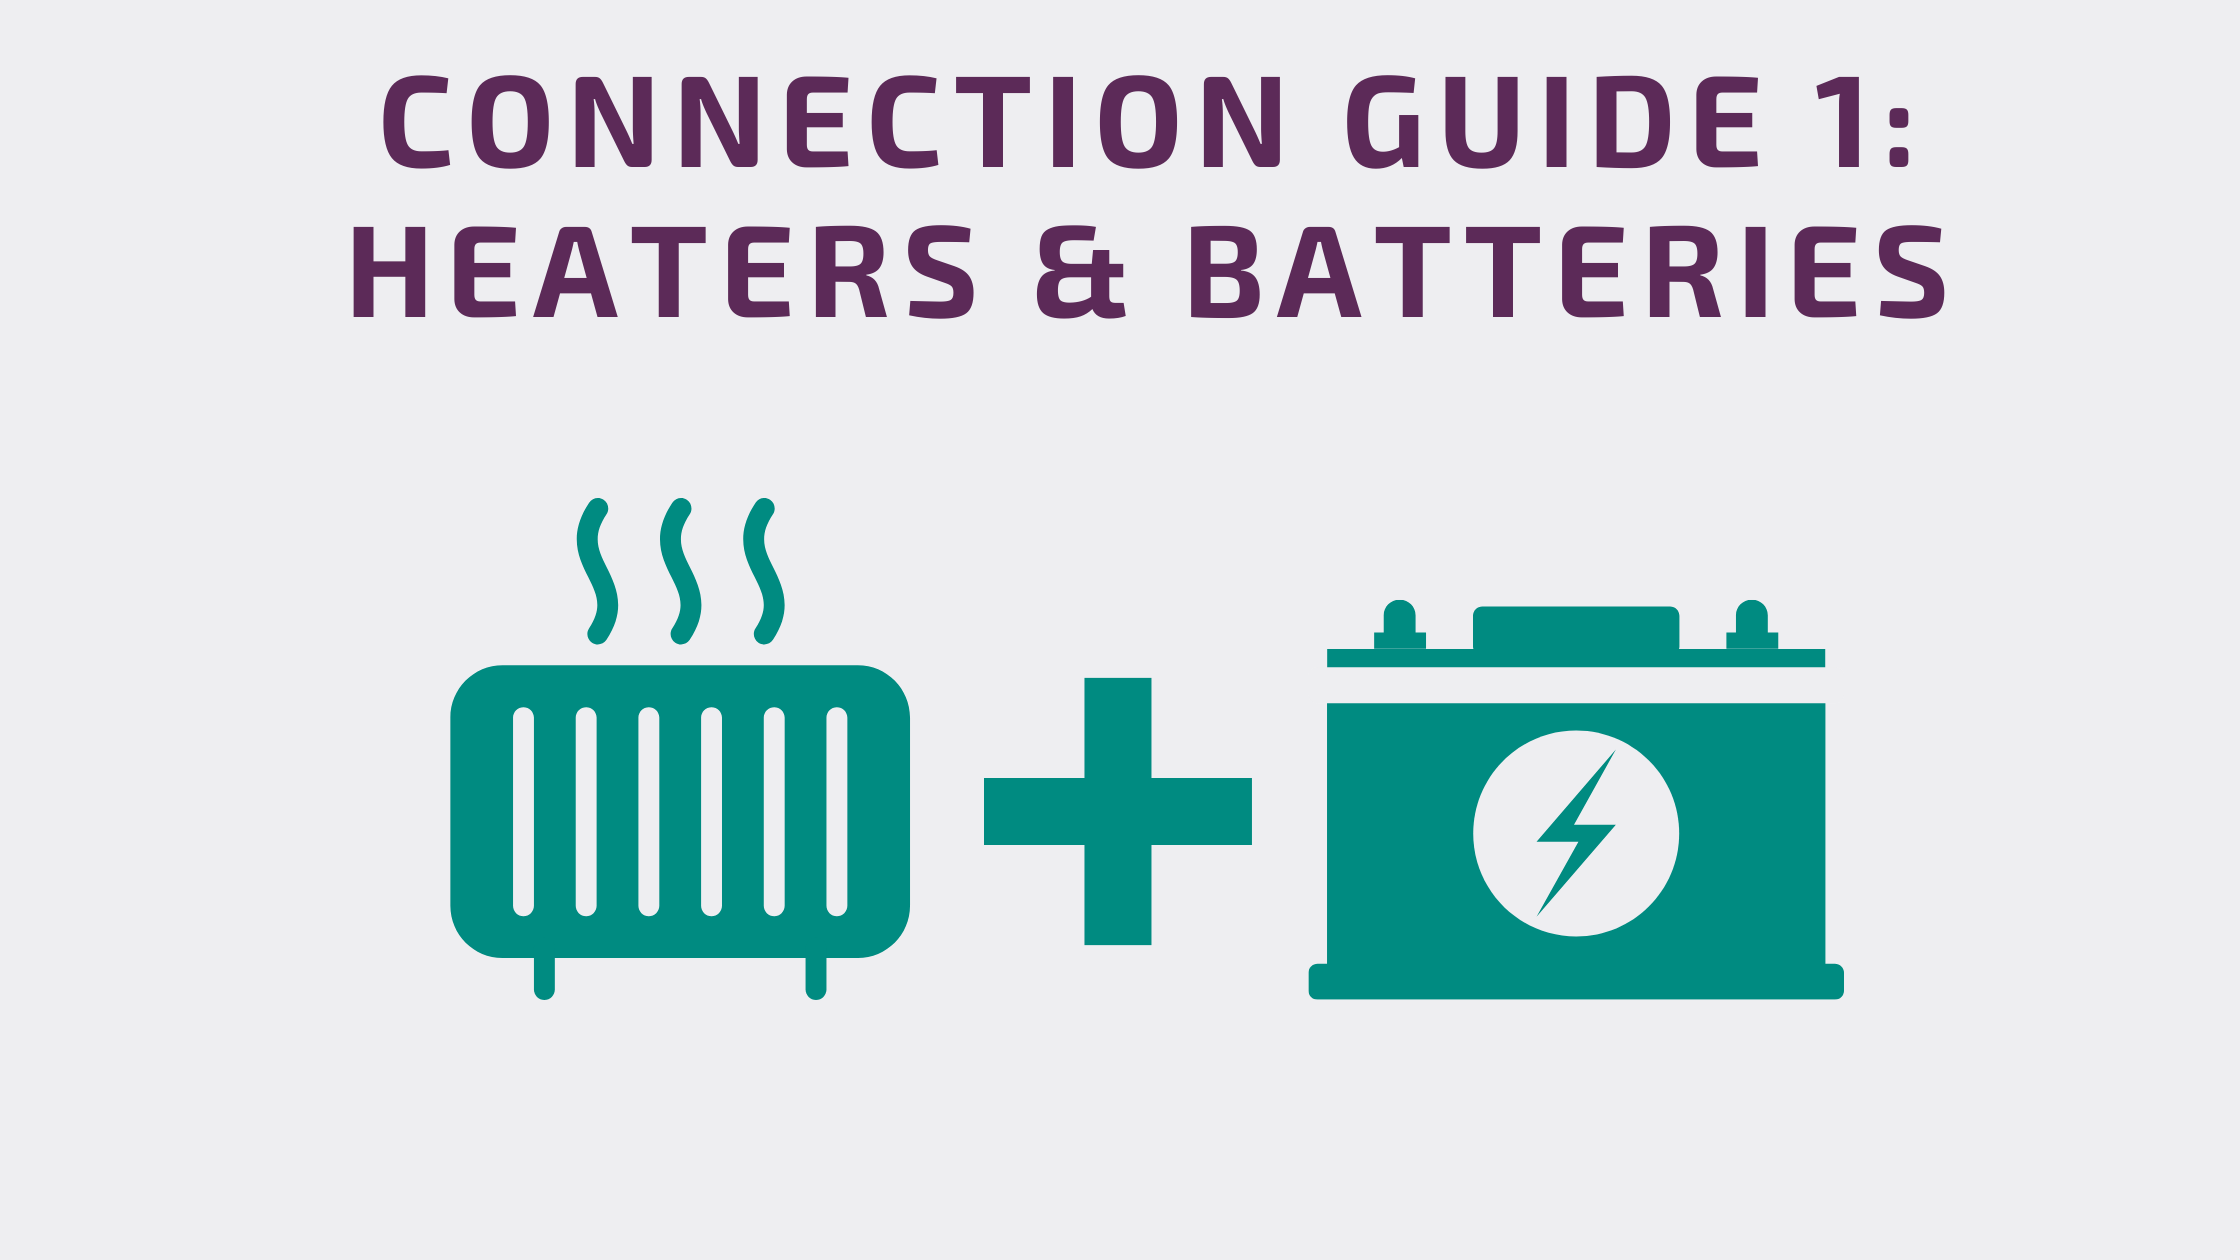 Connection Guide 1: Heaters & Batteries